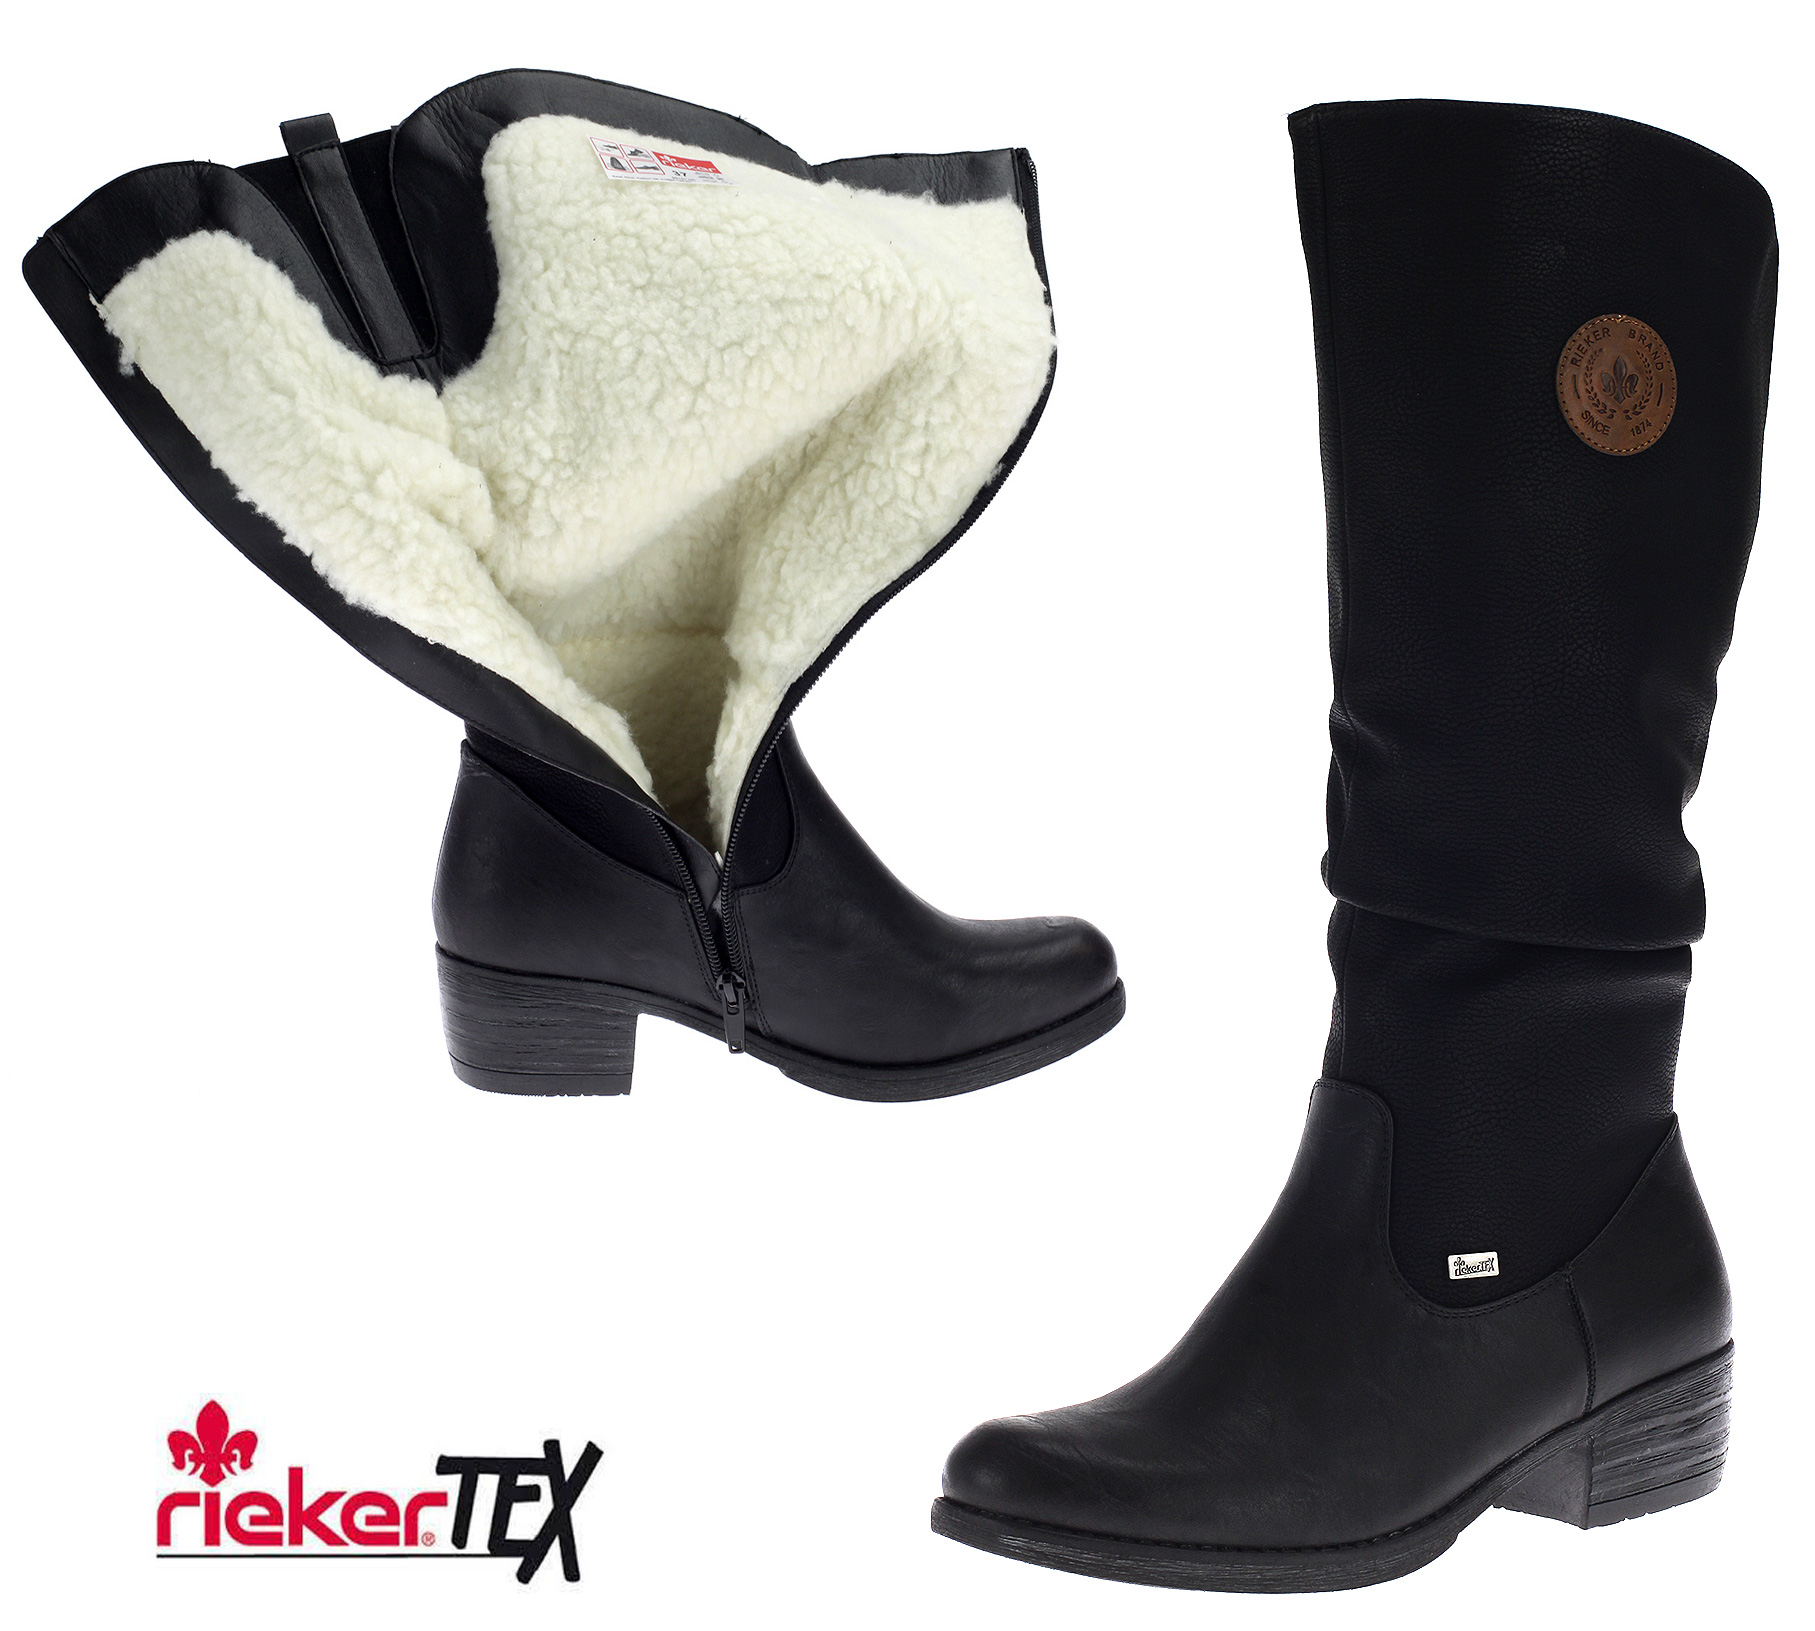 Details about Rieker Tex Women's Boots Winter Boots Warm Padding Shoes Black 93157 00 New